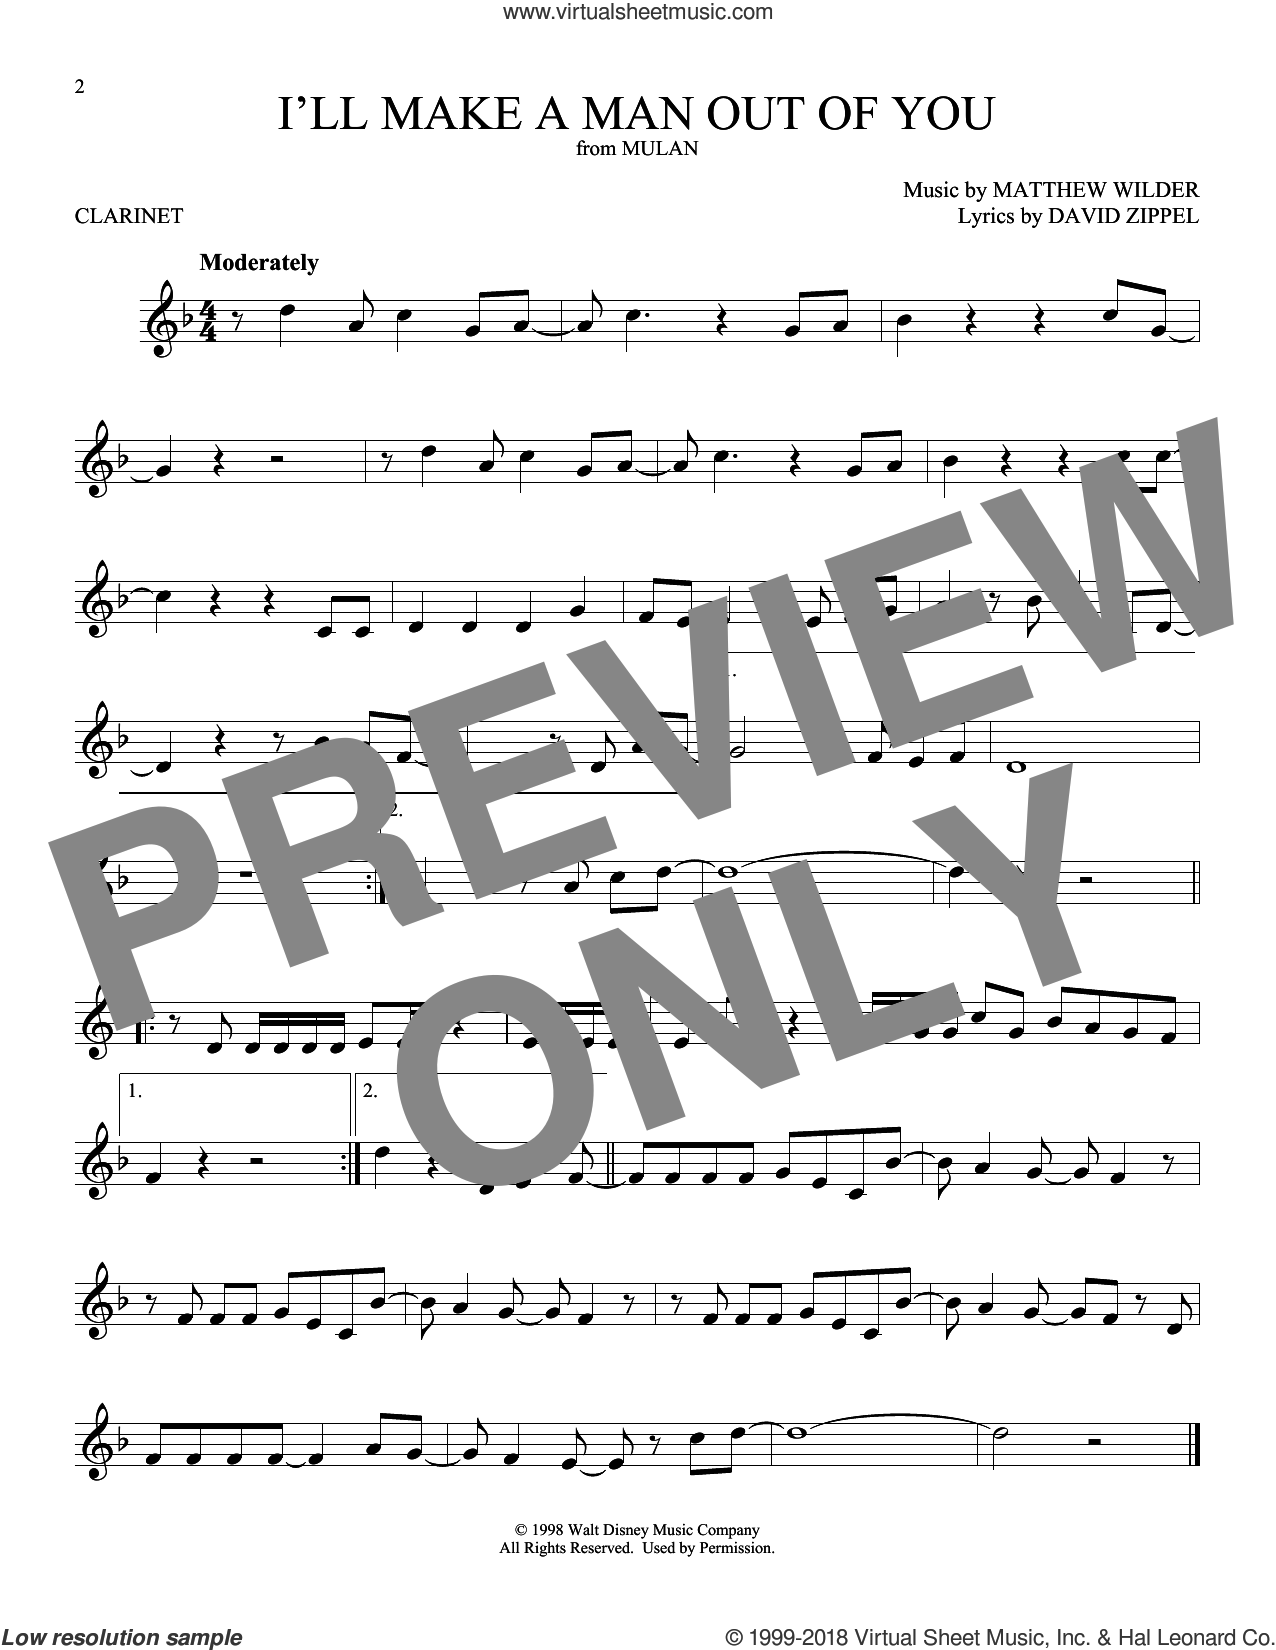 I'll Make A Man Out Of You (from Mulan) sheet music for clarinet solo by David Zippel and Matthew Wilder, intermediate skill level